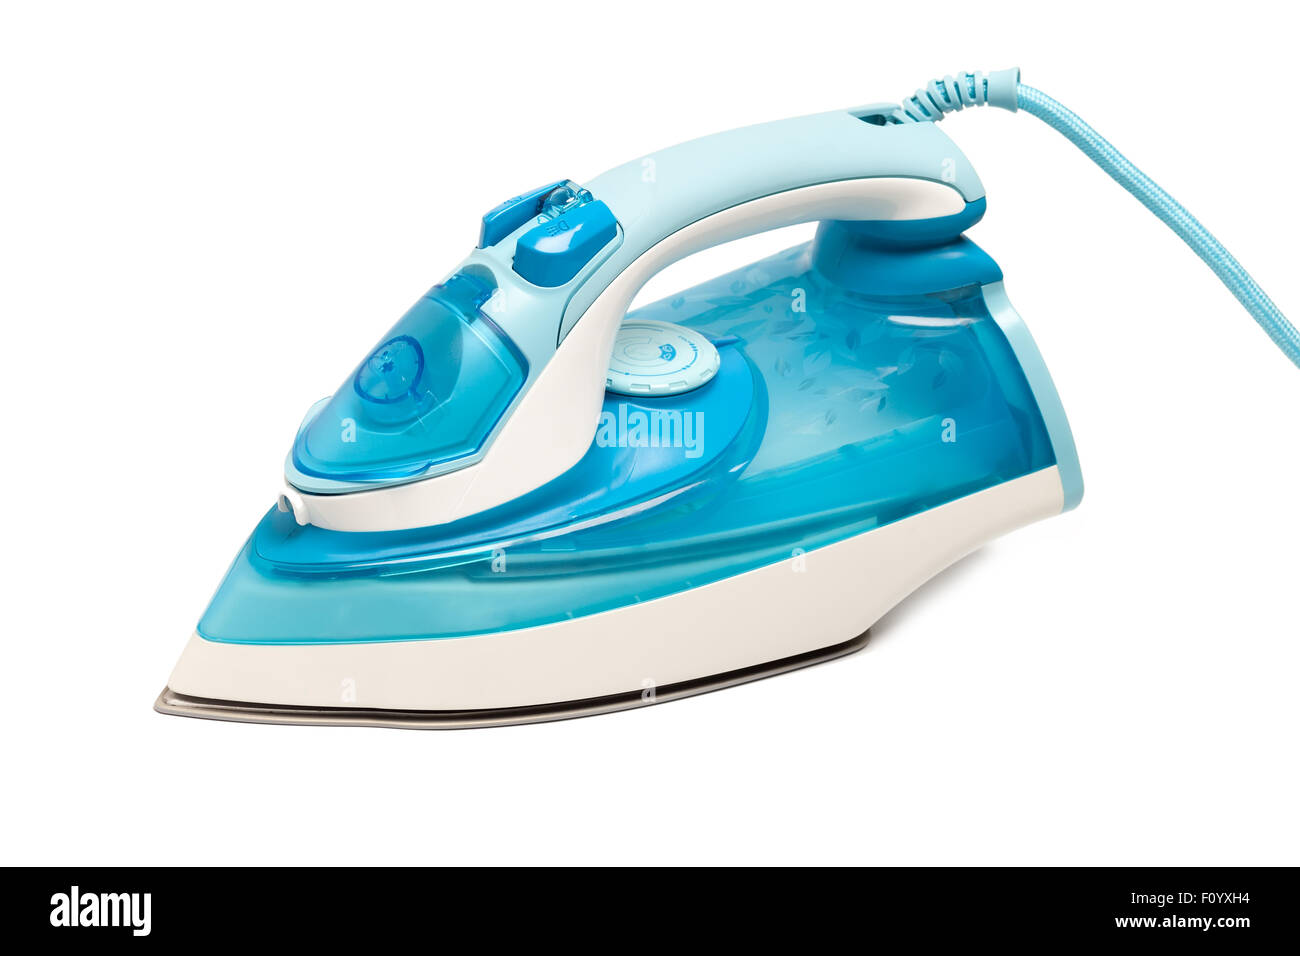 iron housework ironed electric tool clean white background ironing steam housekeeping - Stock Image